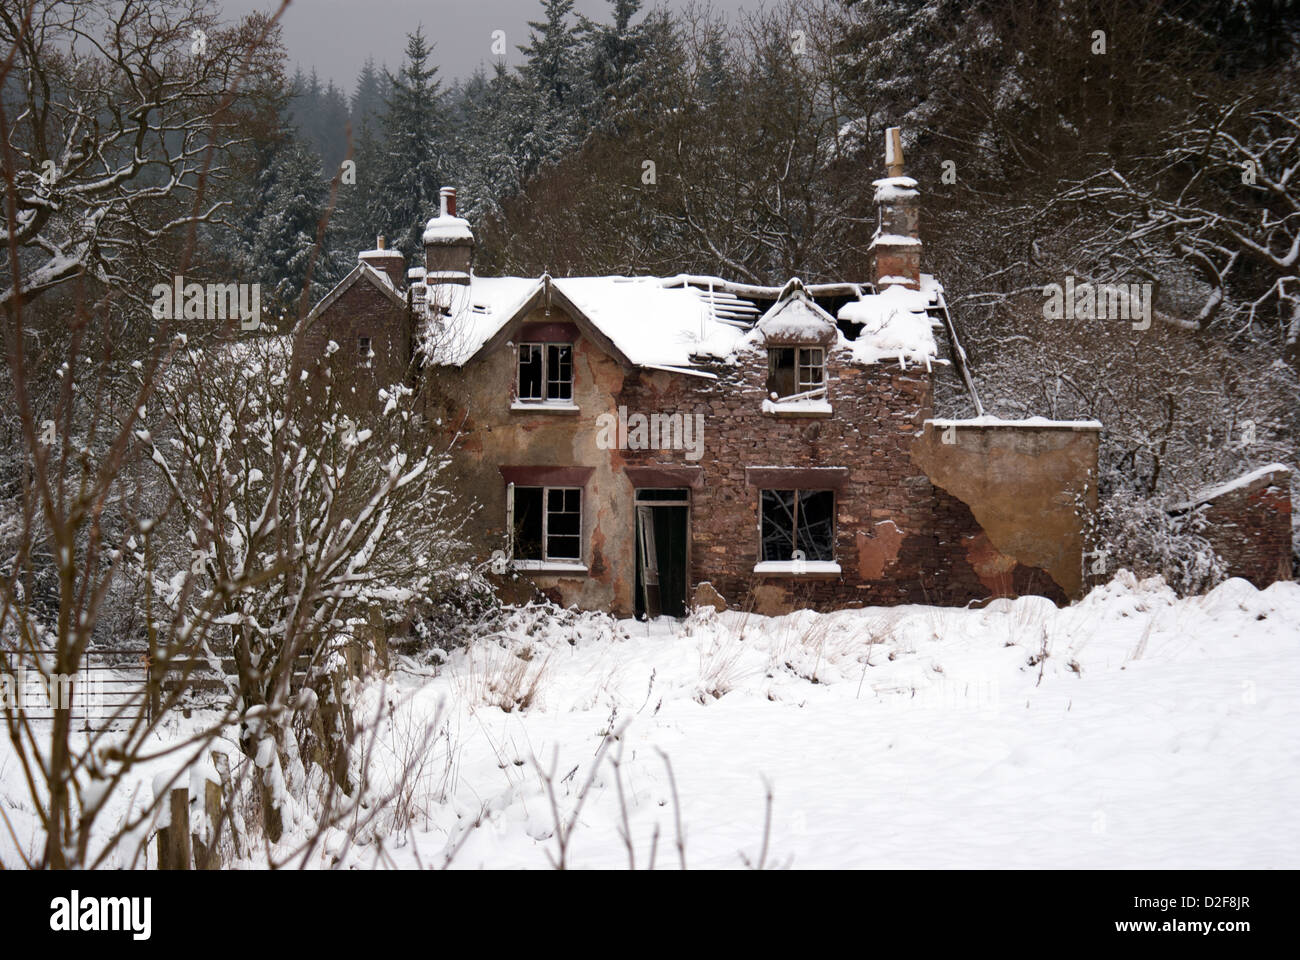 Runied cottage silhouetted in the snow at Blaize Bailey in the Forest of Dean, Gloucestershire, UK - Stock Image